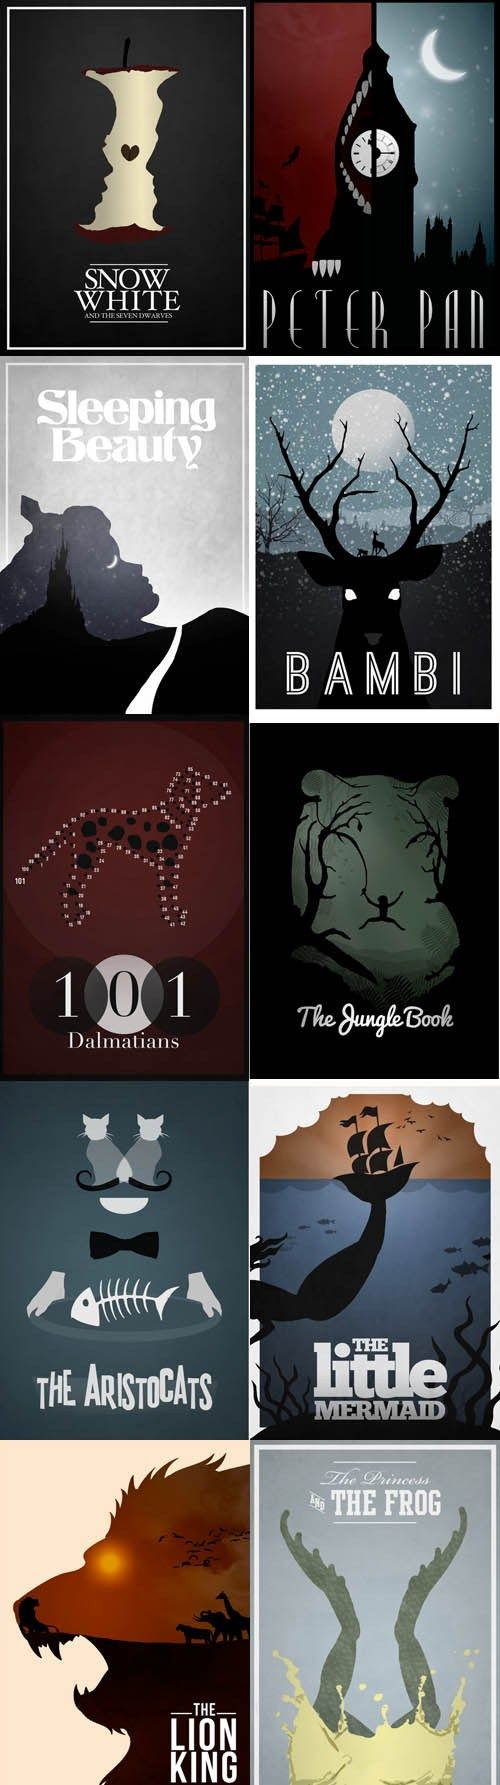 Minimalist Disney Movie Posters - I think Jungle Book has the best one but they're all really well done